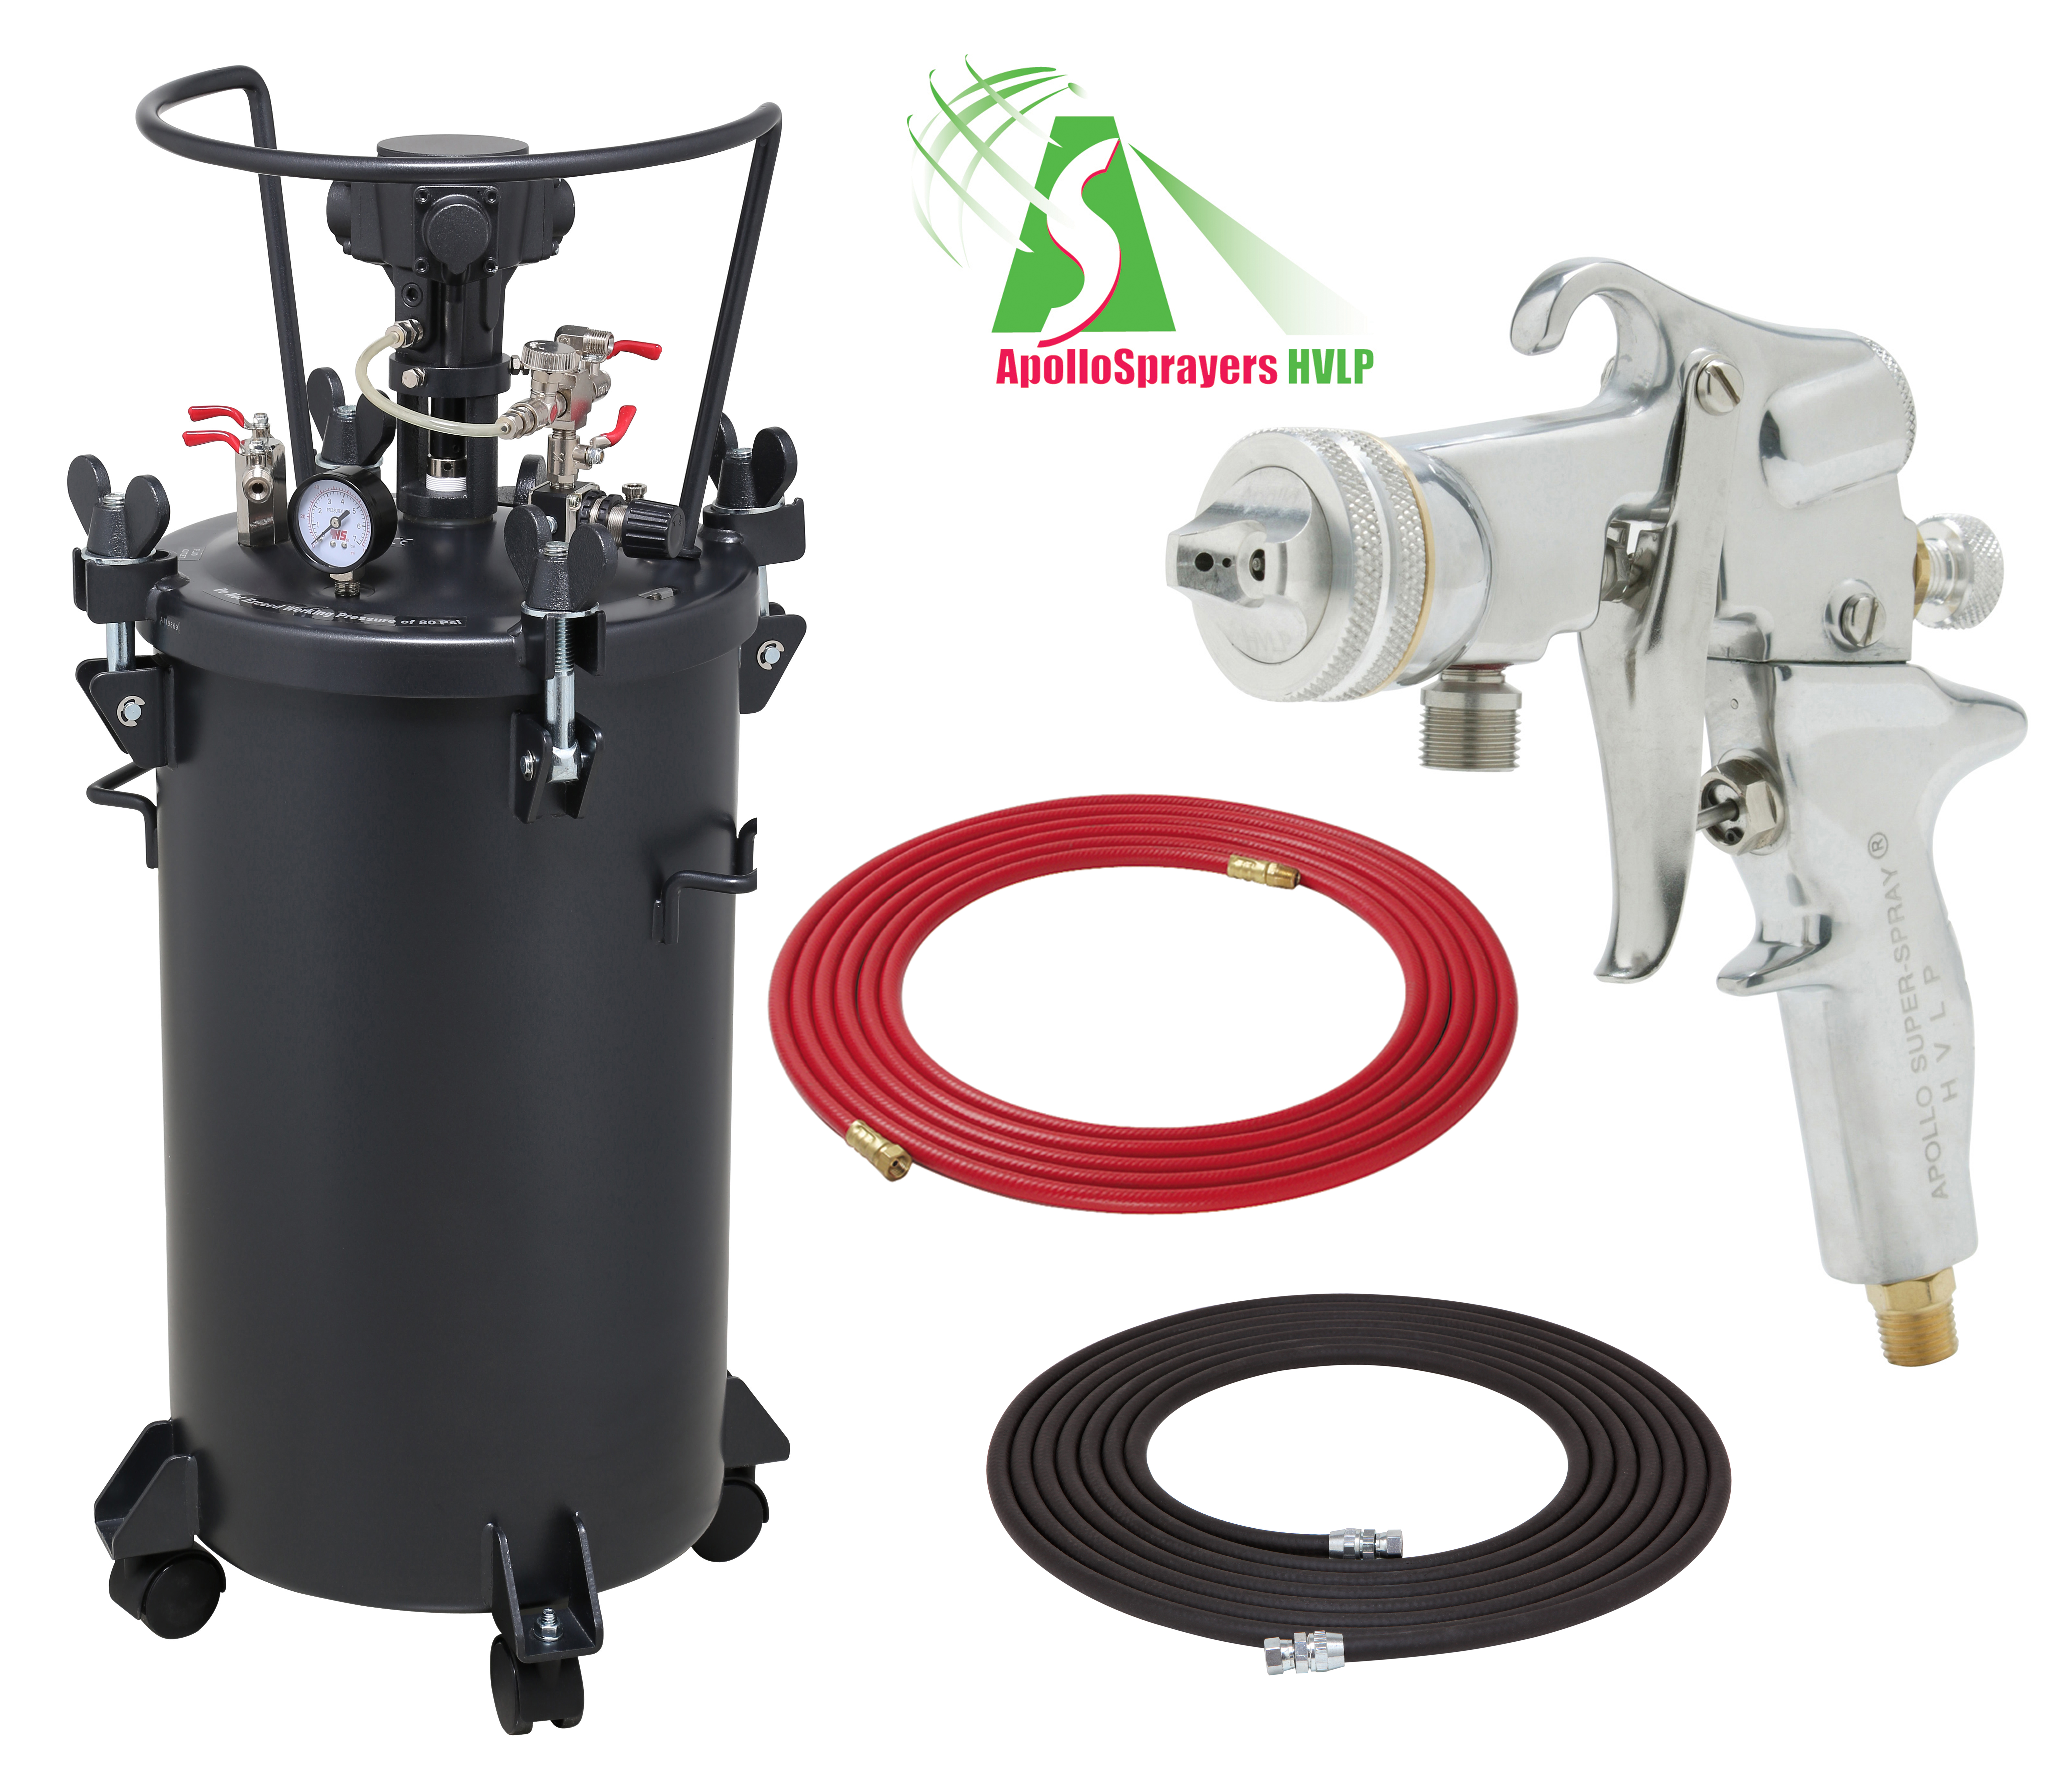 10 Gallon Combo Package with the 5106 Spray Gun